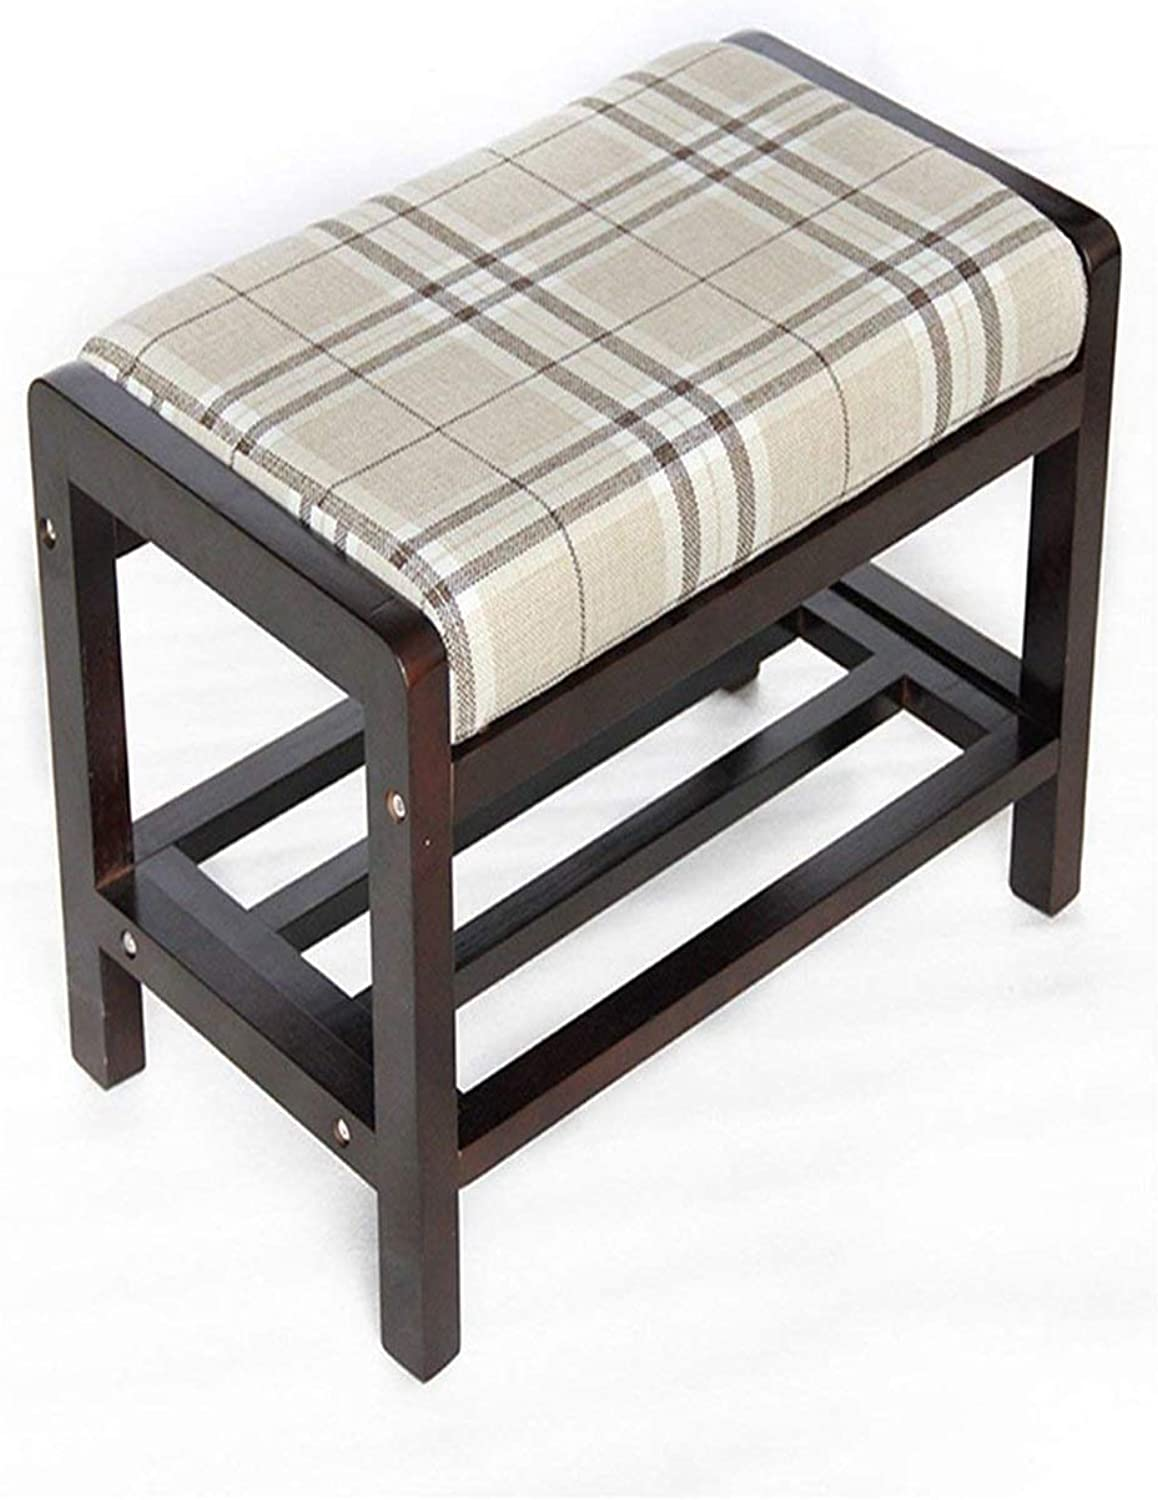 Stool Stool Solid Wood Fabric Simple shoes Stool Modern Assembly Sofa Stool Plaid Fabric 37x33x55cm 01